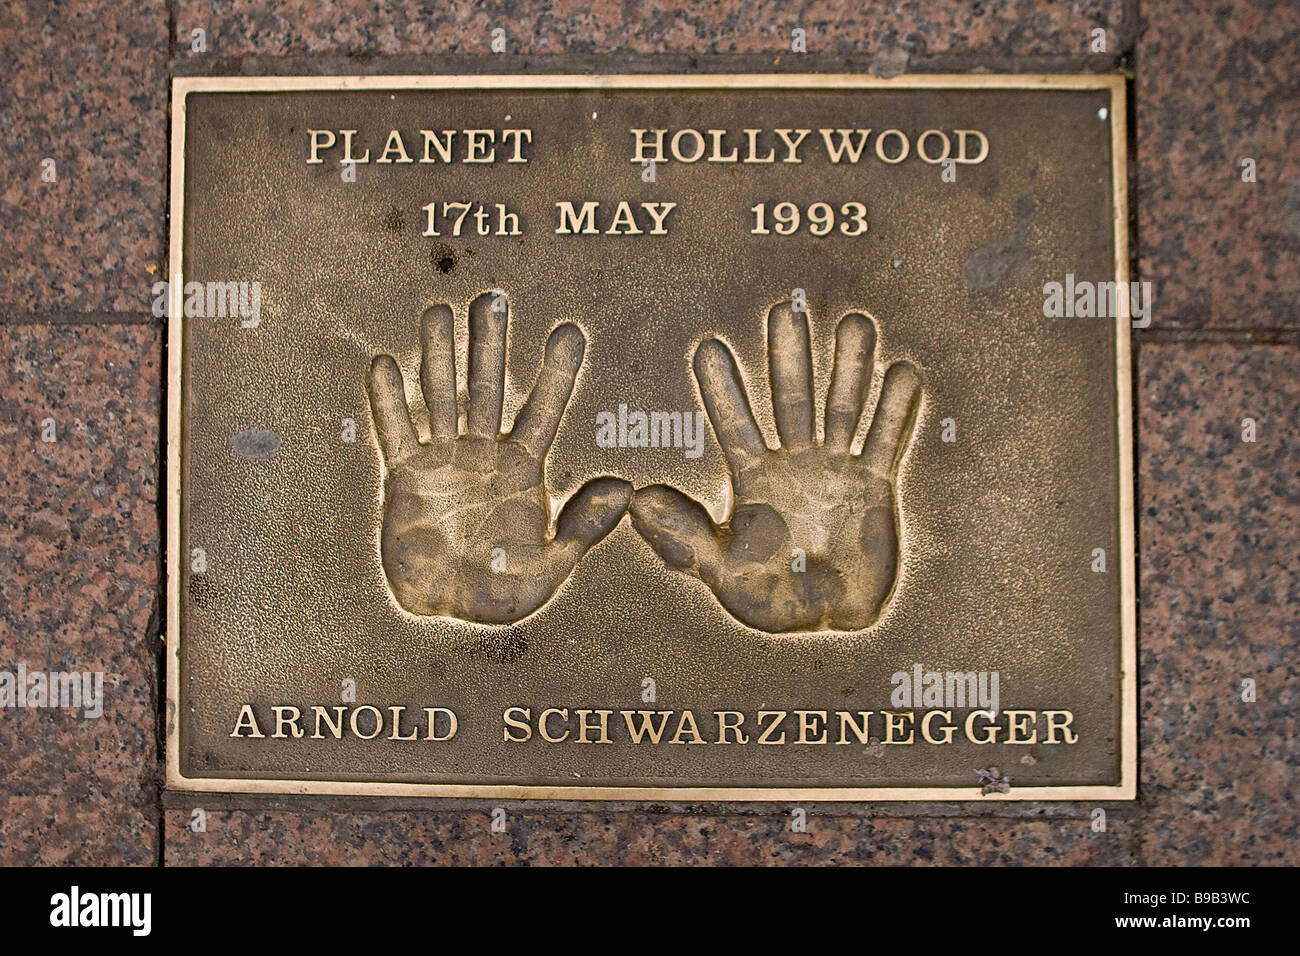 Austrian actor Arnold Schwarzenegger: hand prints at Leicester Square, London.